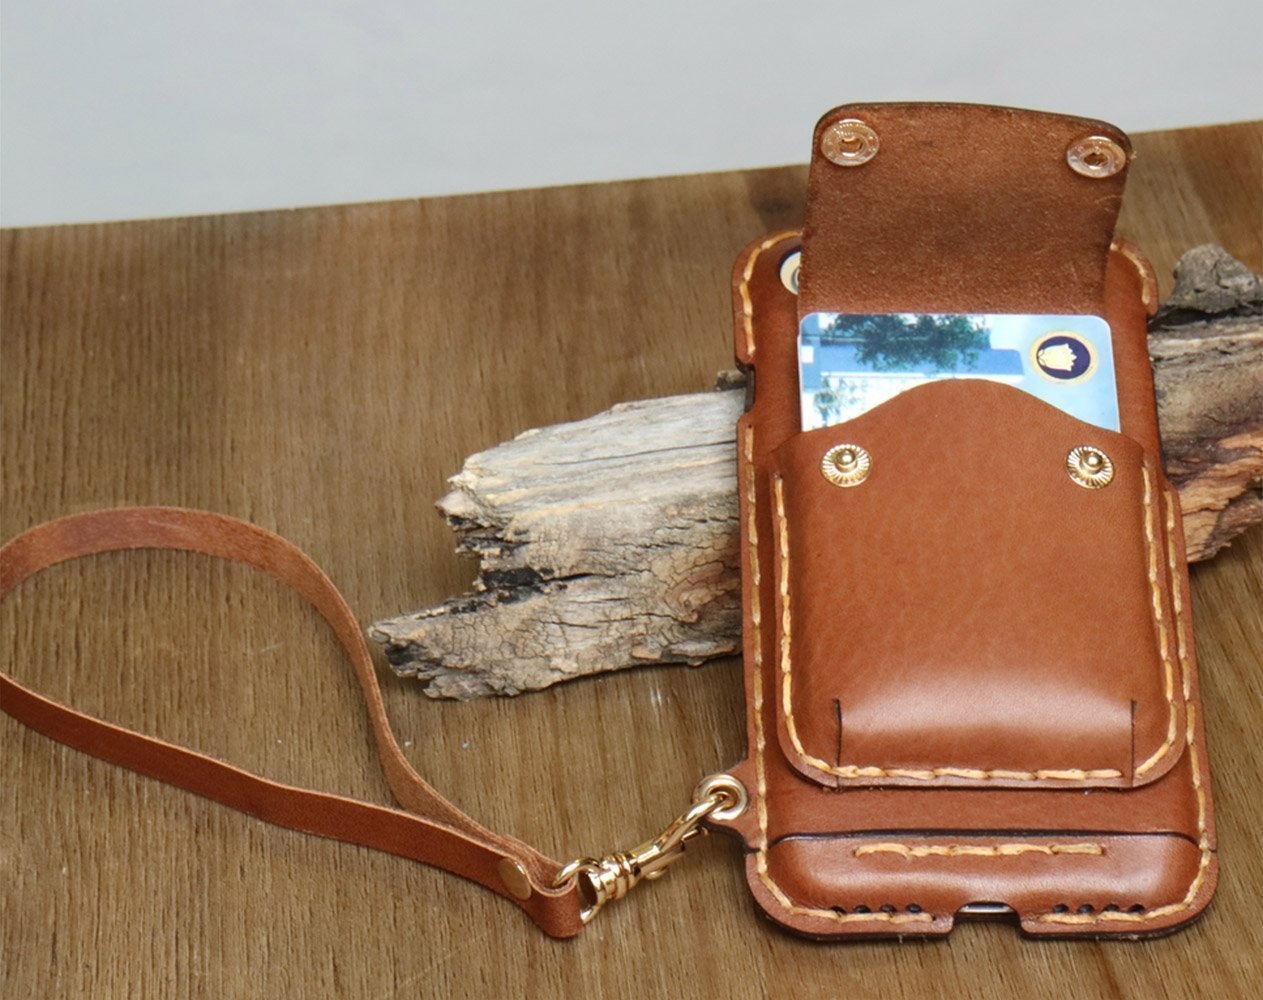 Leather Brown cell phone bag iPhone case cell phone purse small crossbody bag iphone bag cell phone pouch small travel bag cell phone wallet zipper 01WR by PhonePurse